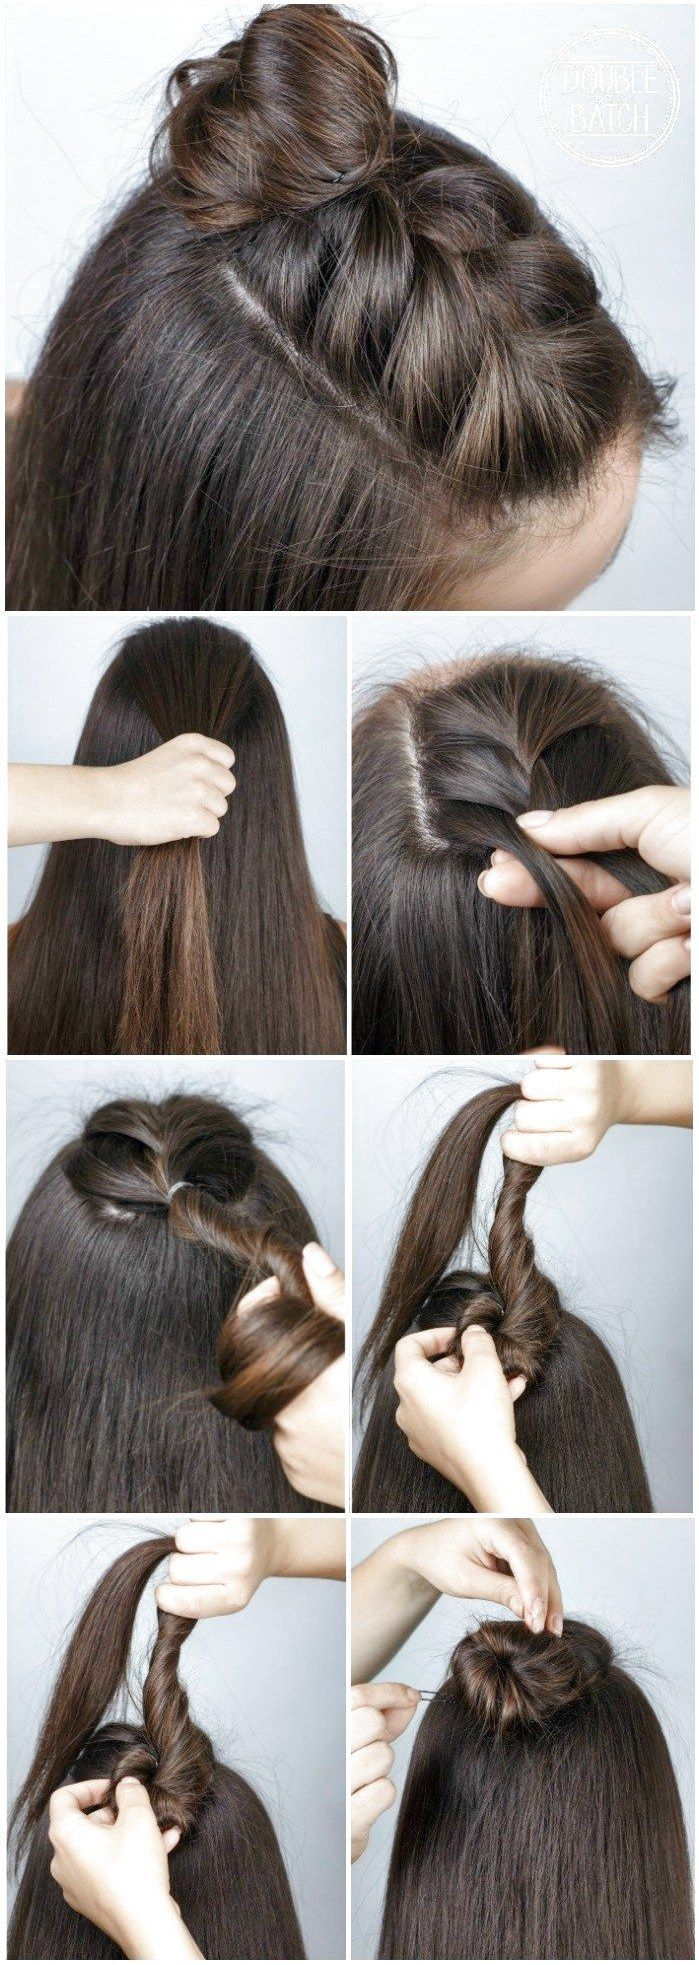 DIY Half Braid hairstyle Tutorial such an easy and quick hair idea for girls #ClassicBoxBraidHairstyles Click for further information